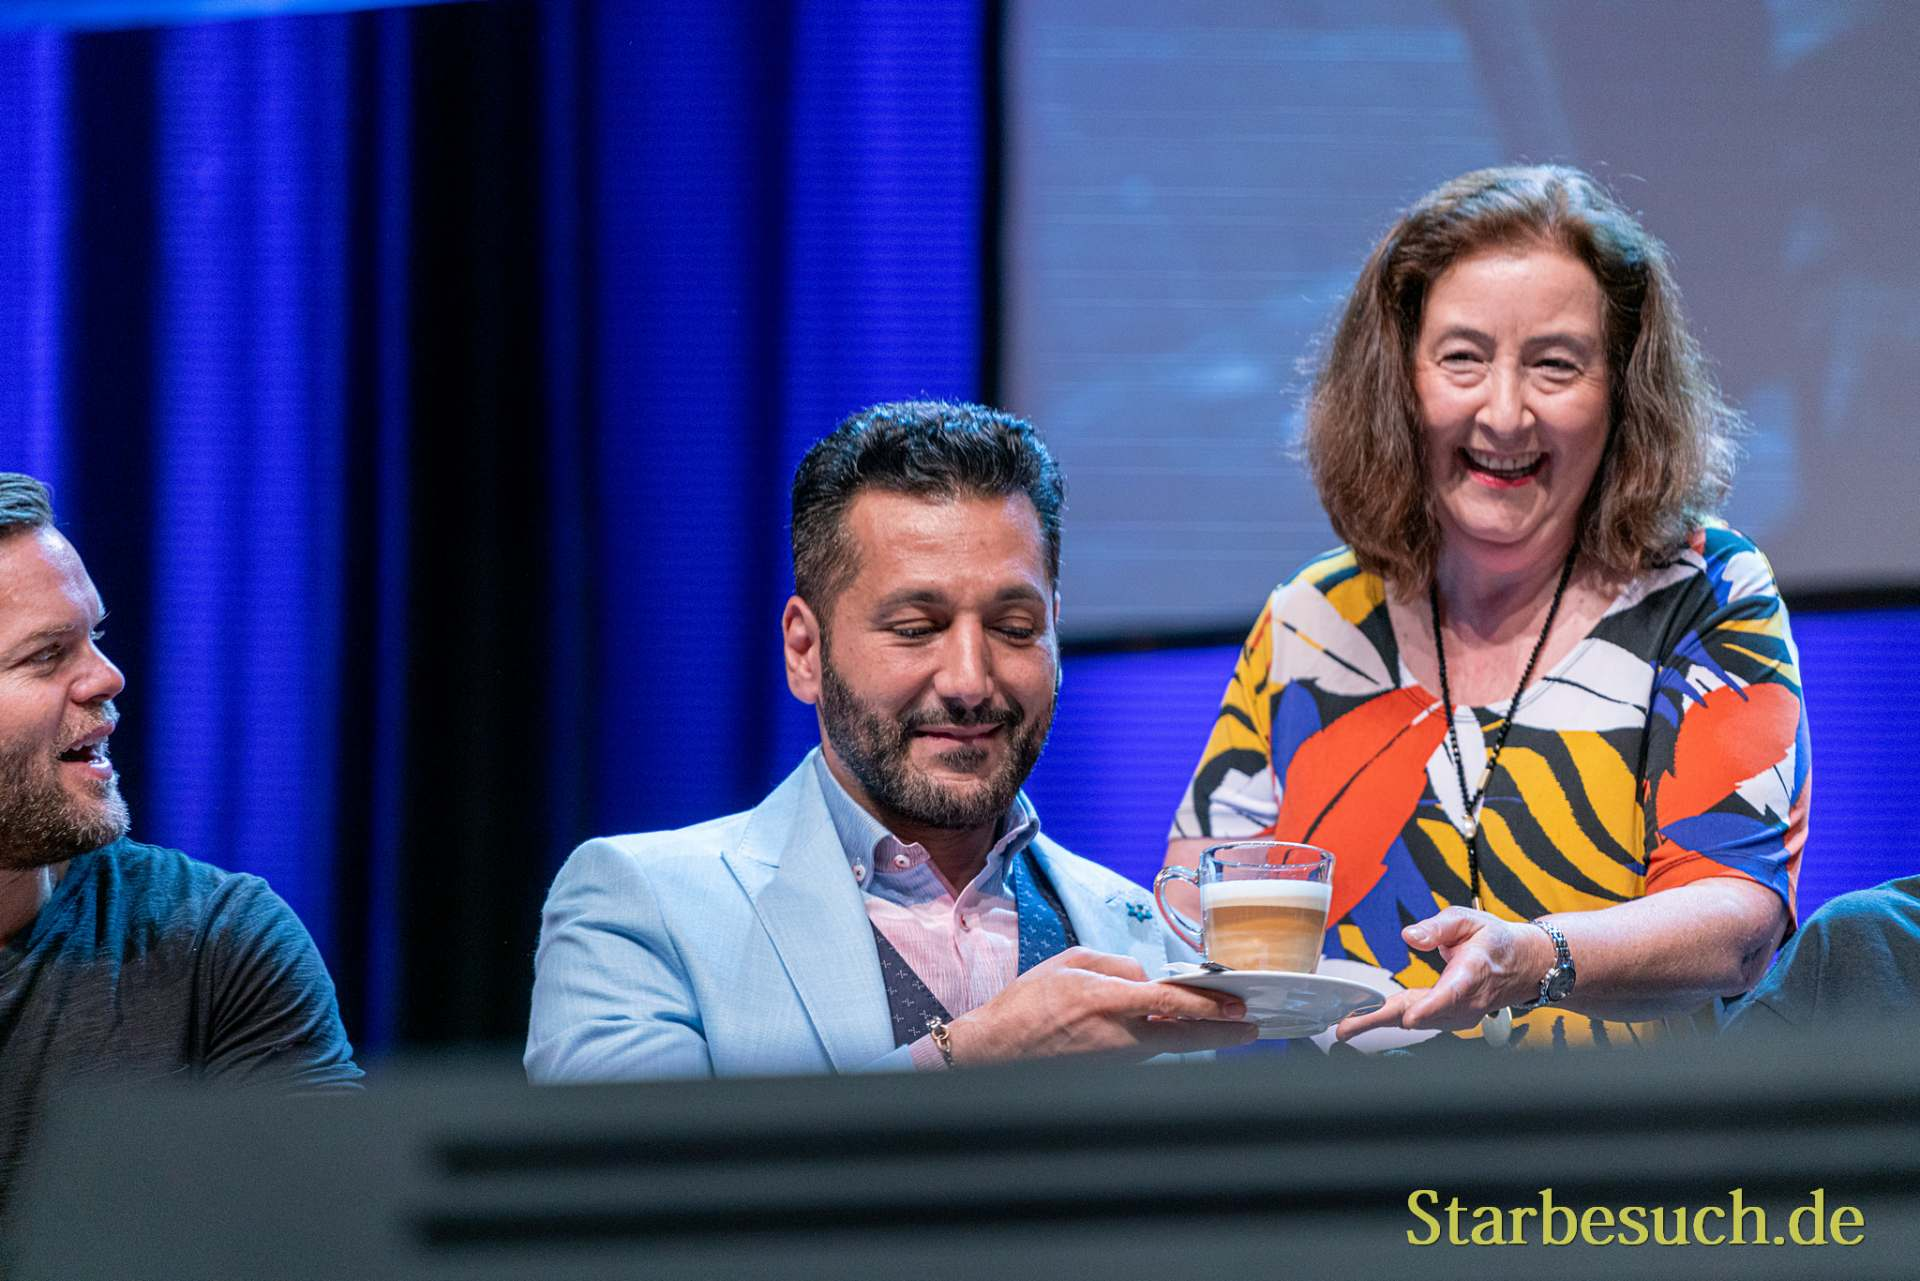 Bonn, Germany - June 8 2019: Cas Anvar and Lori Dungey at FedCon 28, a four day sci-fi convention. FedCon 28 took place Jun 7-10 2019.